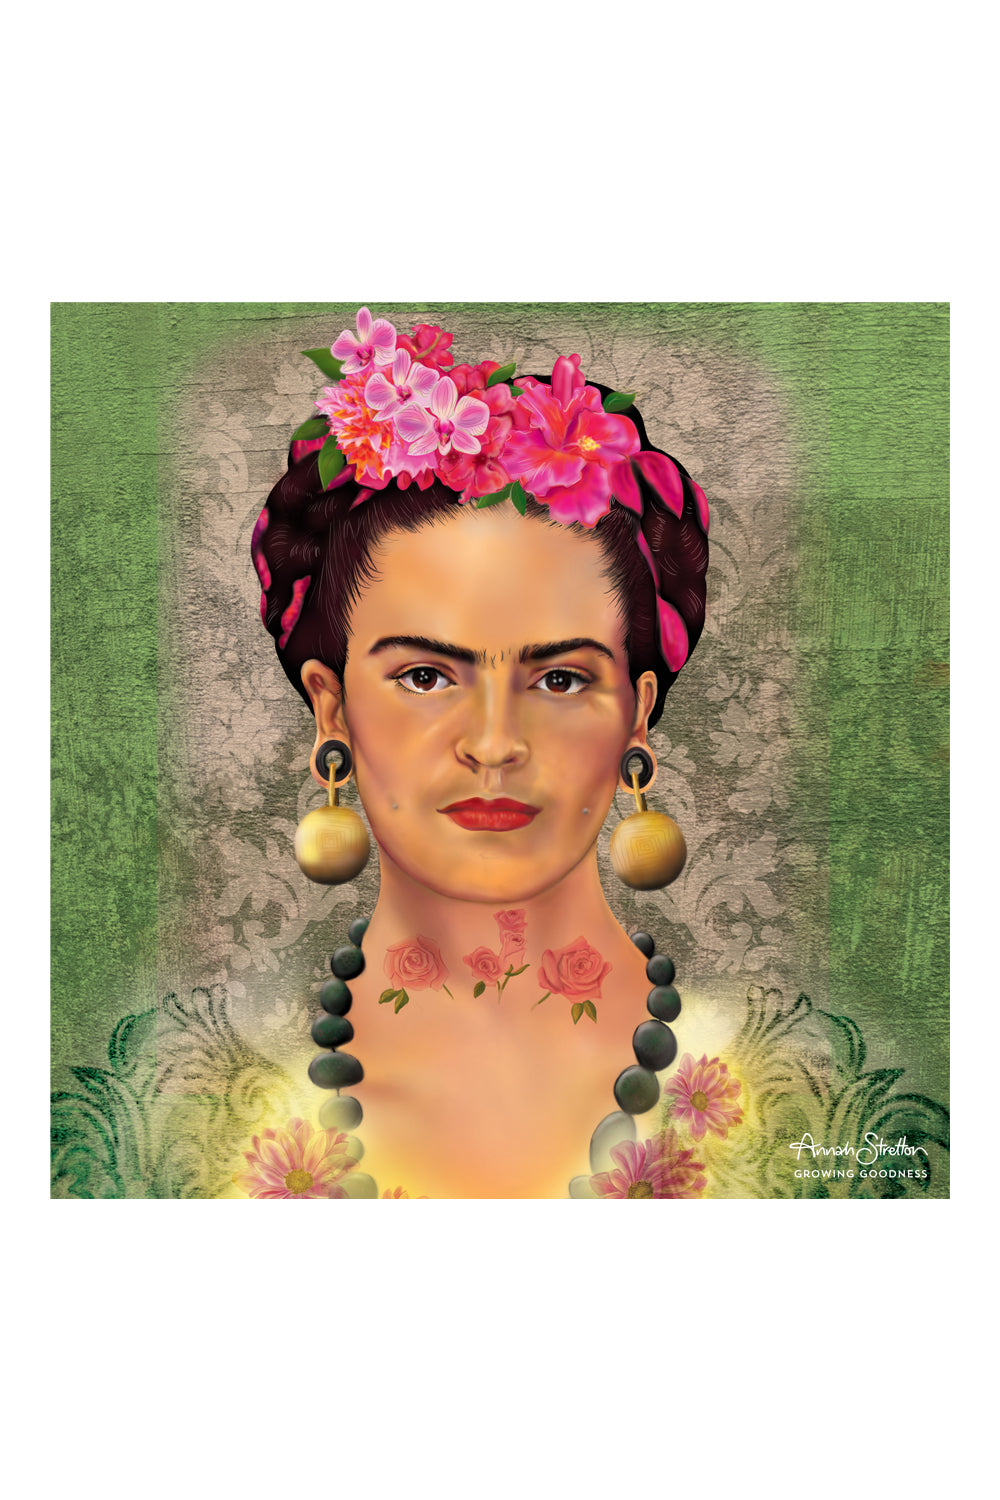 Frida Canvas Print, Green, Original Artwork, Annah Stretton Homewares